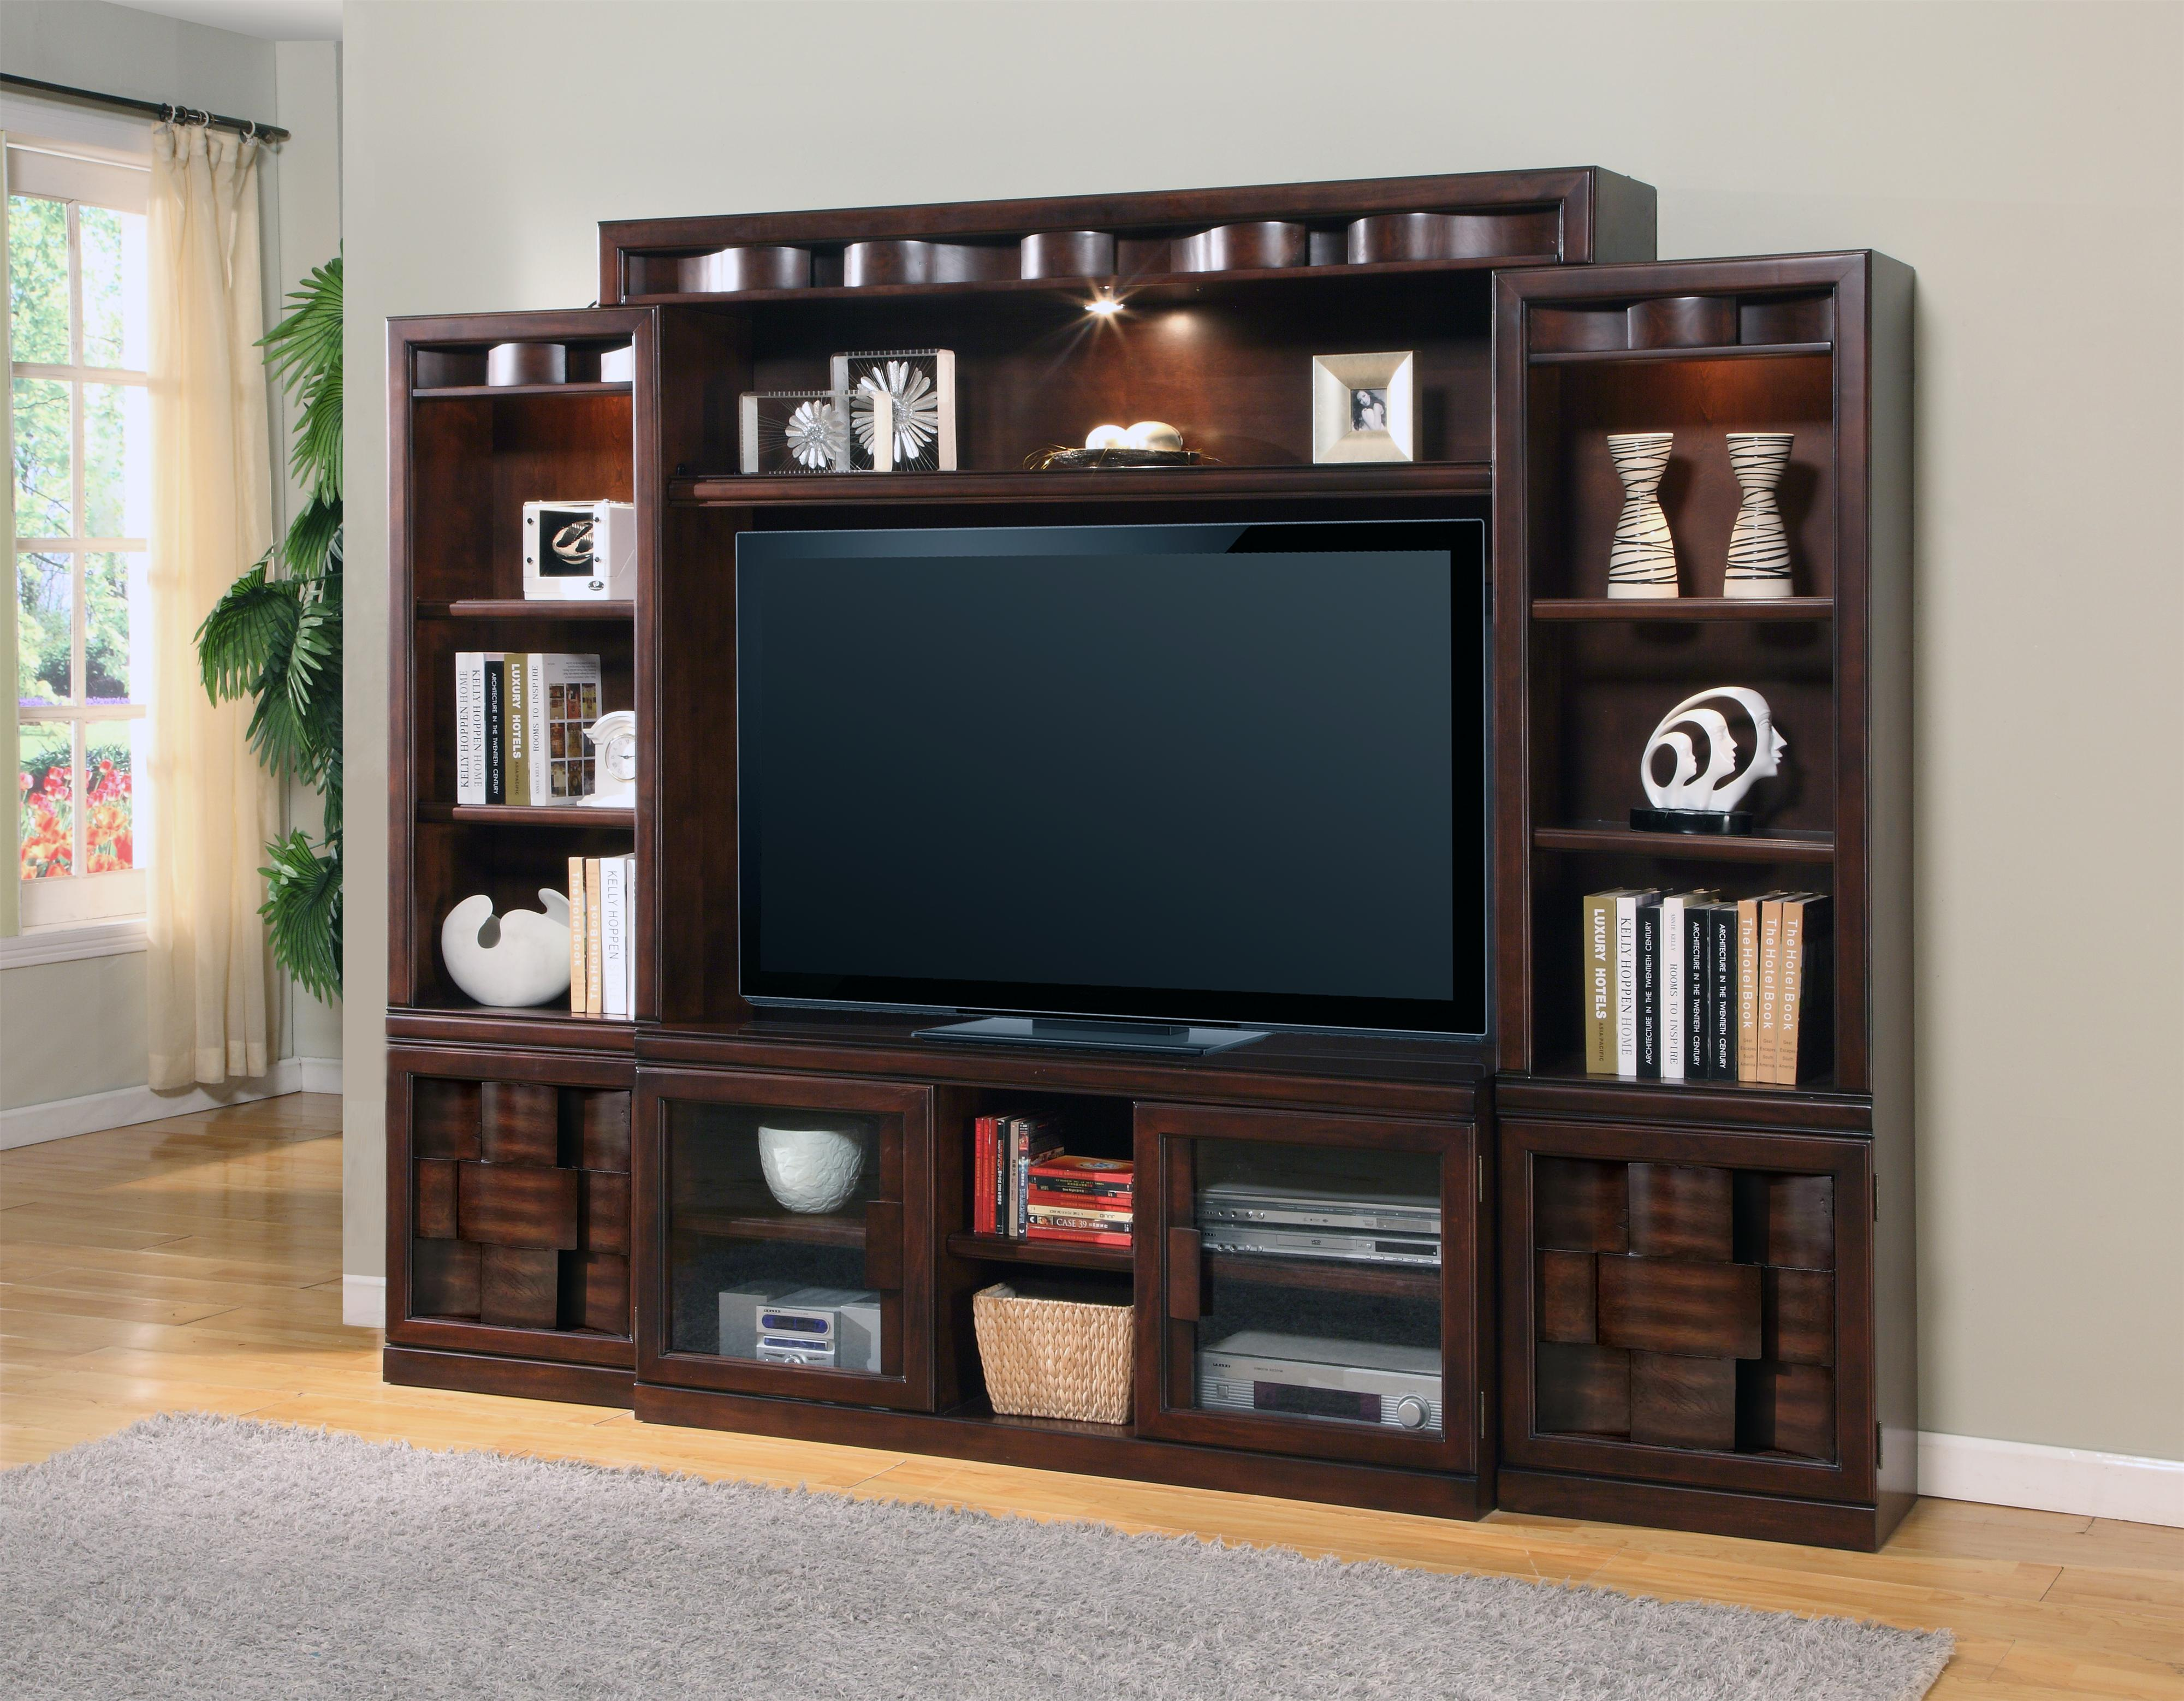 Home Entertainment Wall Units parker house oslo 4-piece stationary entertainment wall with 2